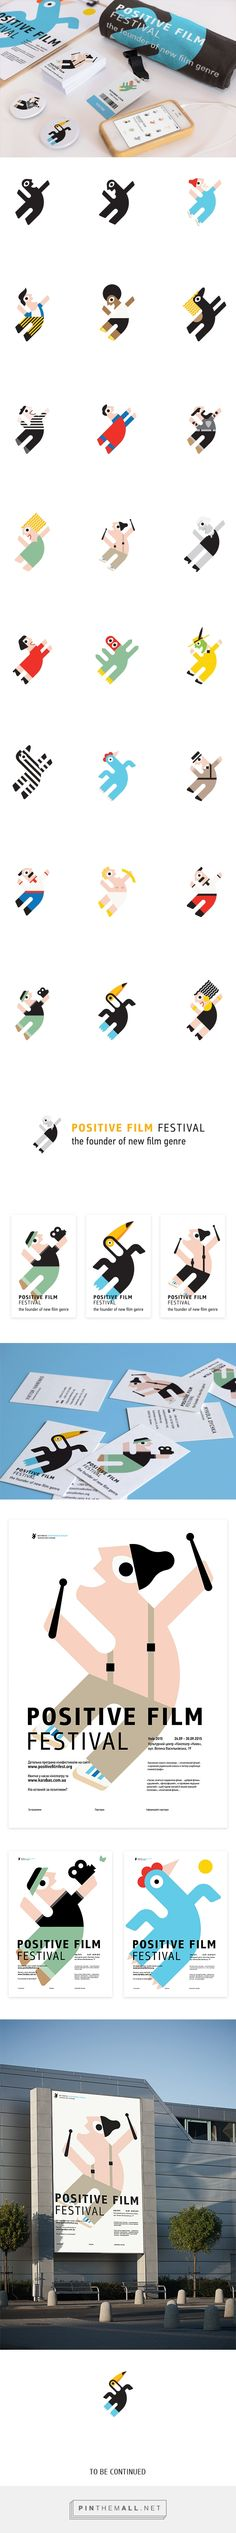 Positive Film Festival on Behance icon design characters people poster layout branding